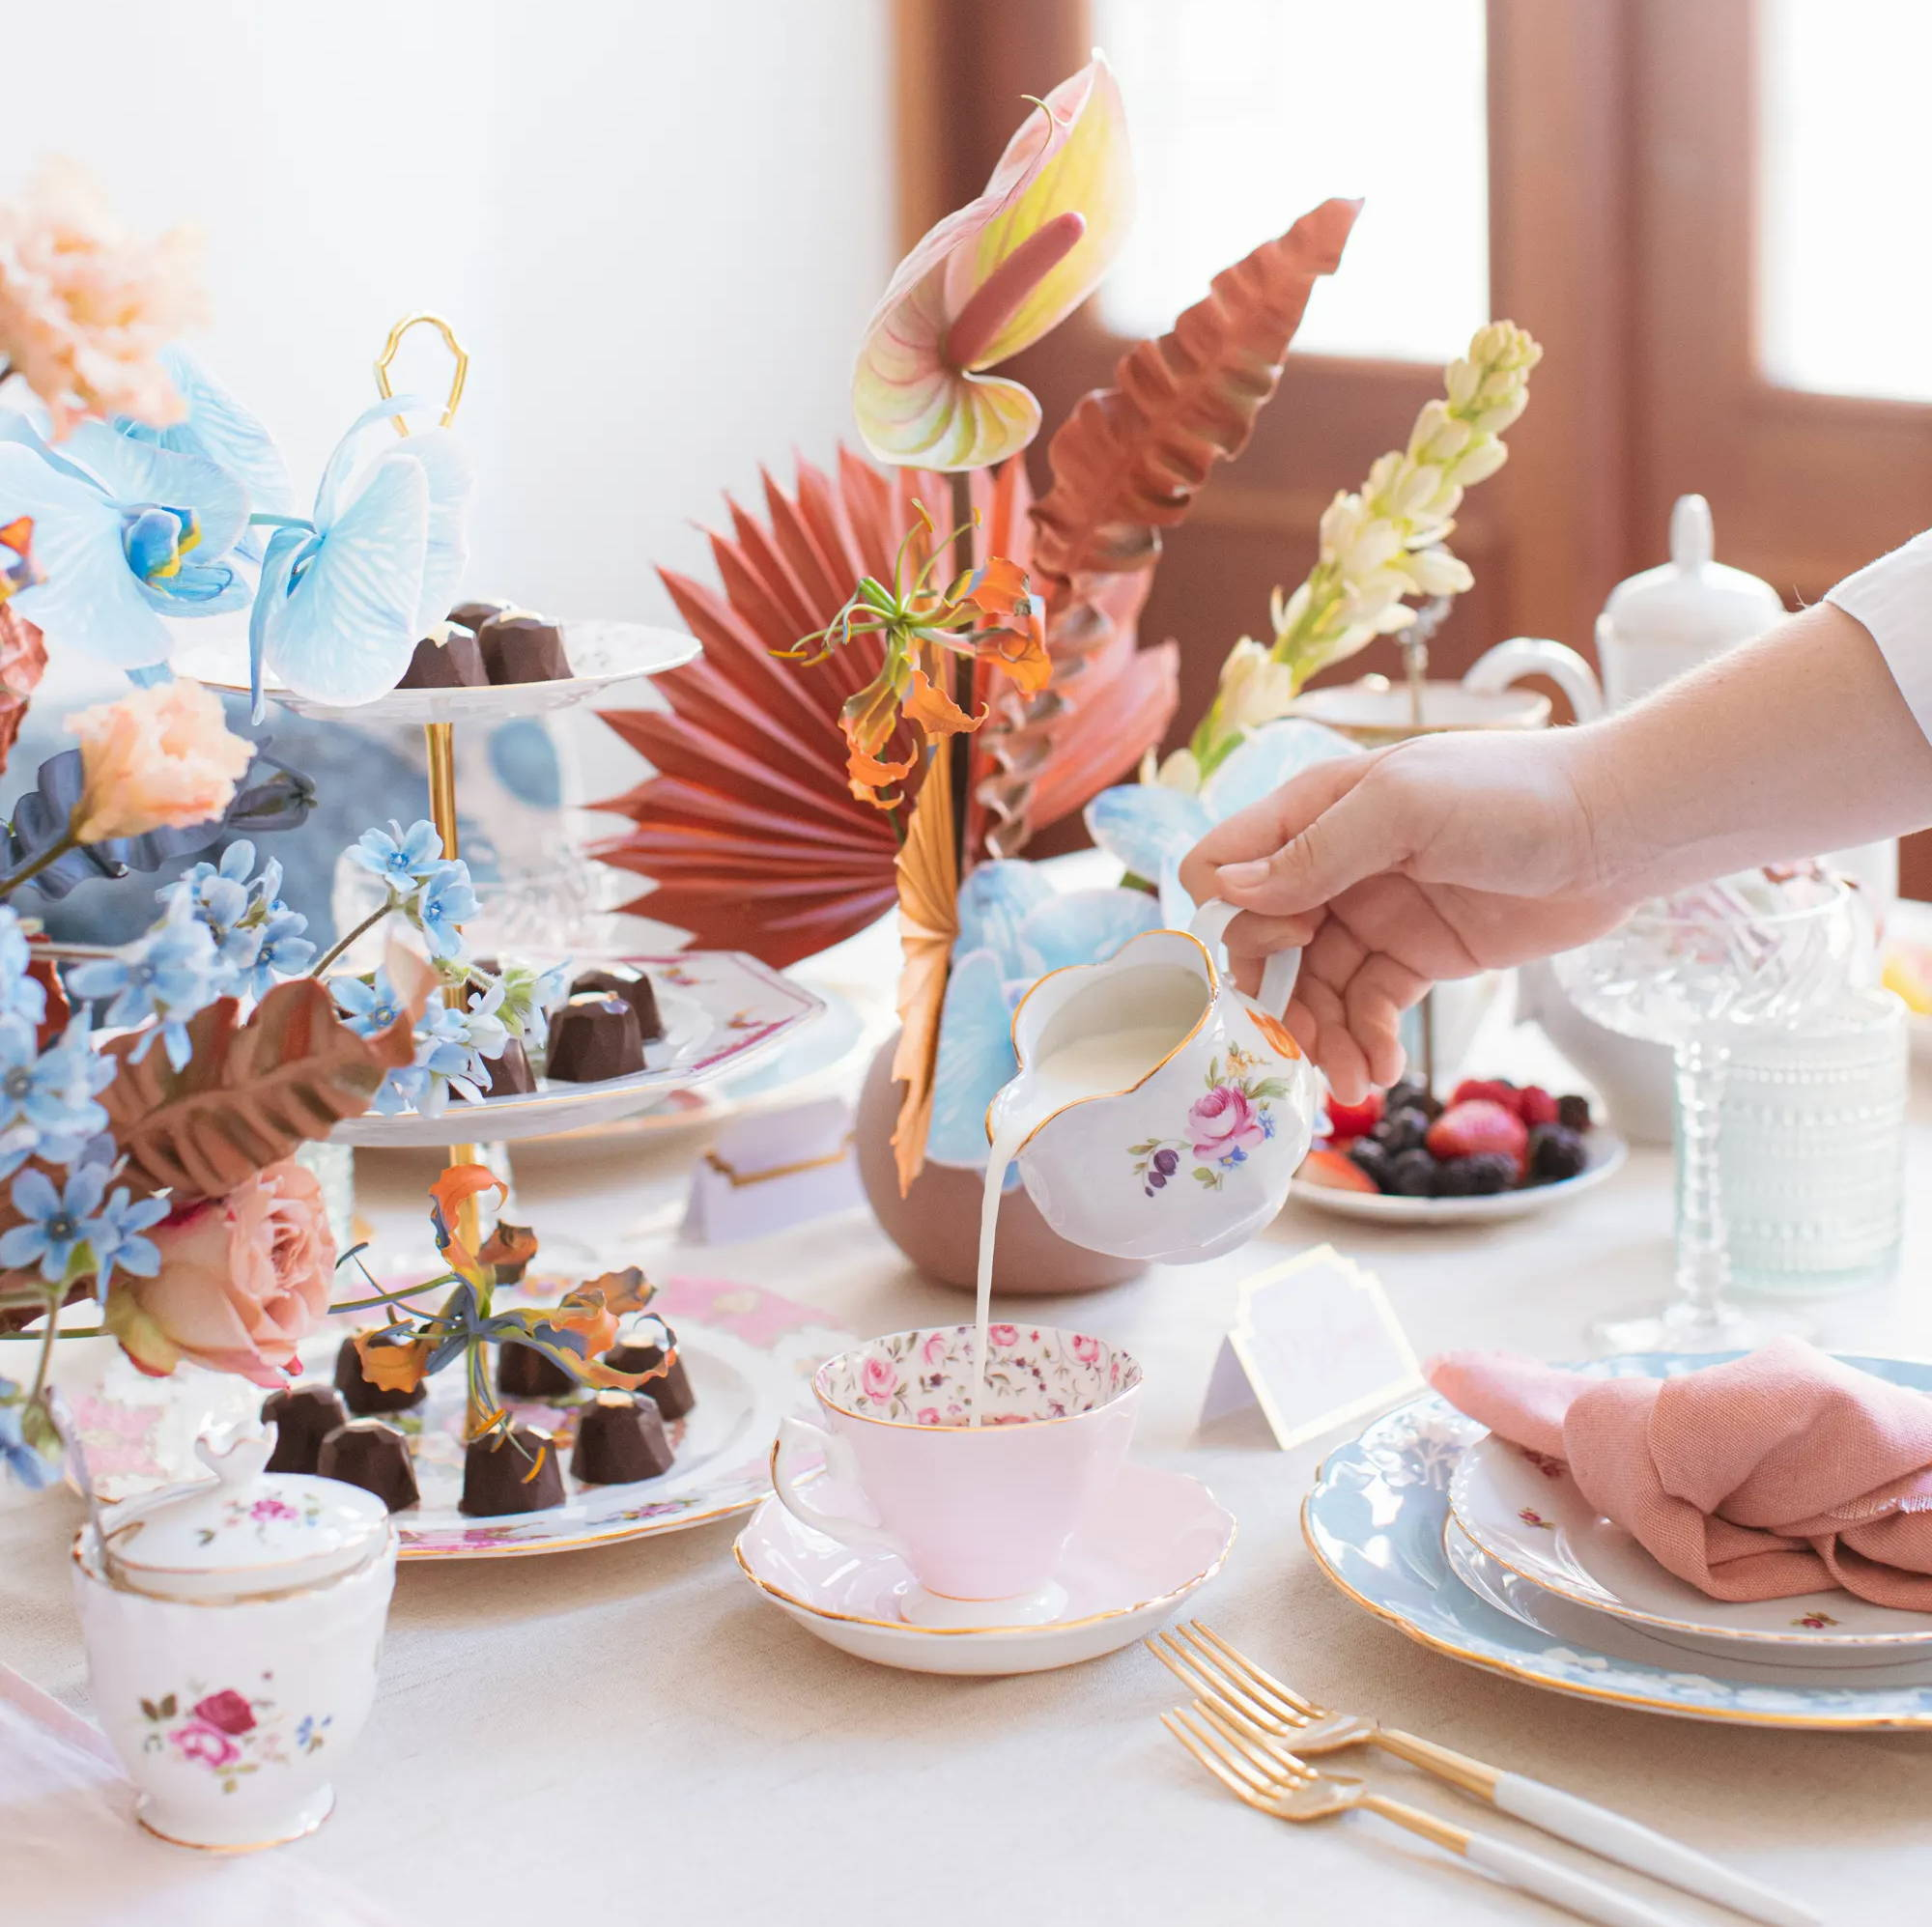 pouring cream from creamer into pink floral teacup - tea party theme decor